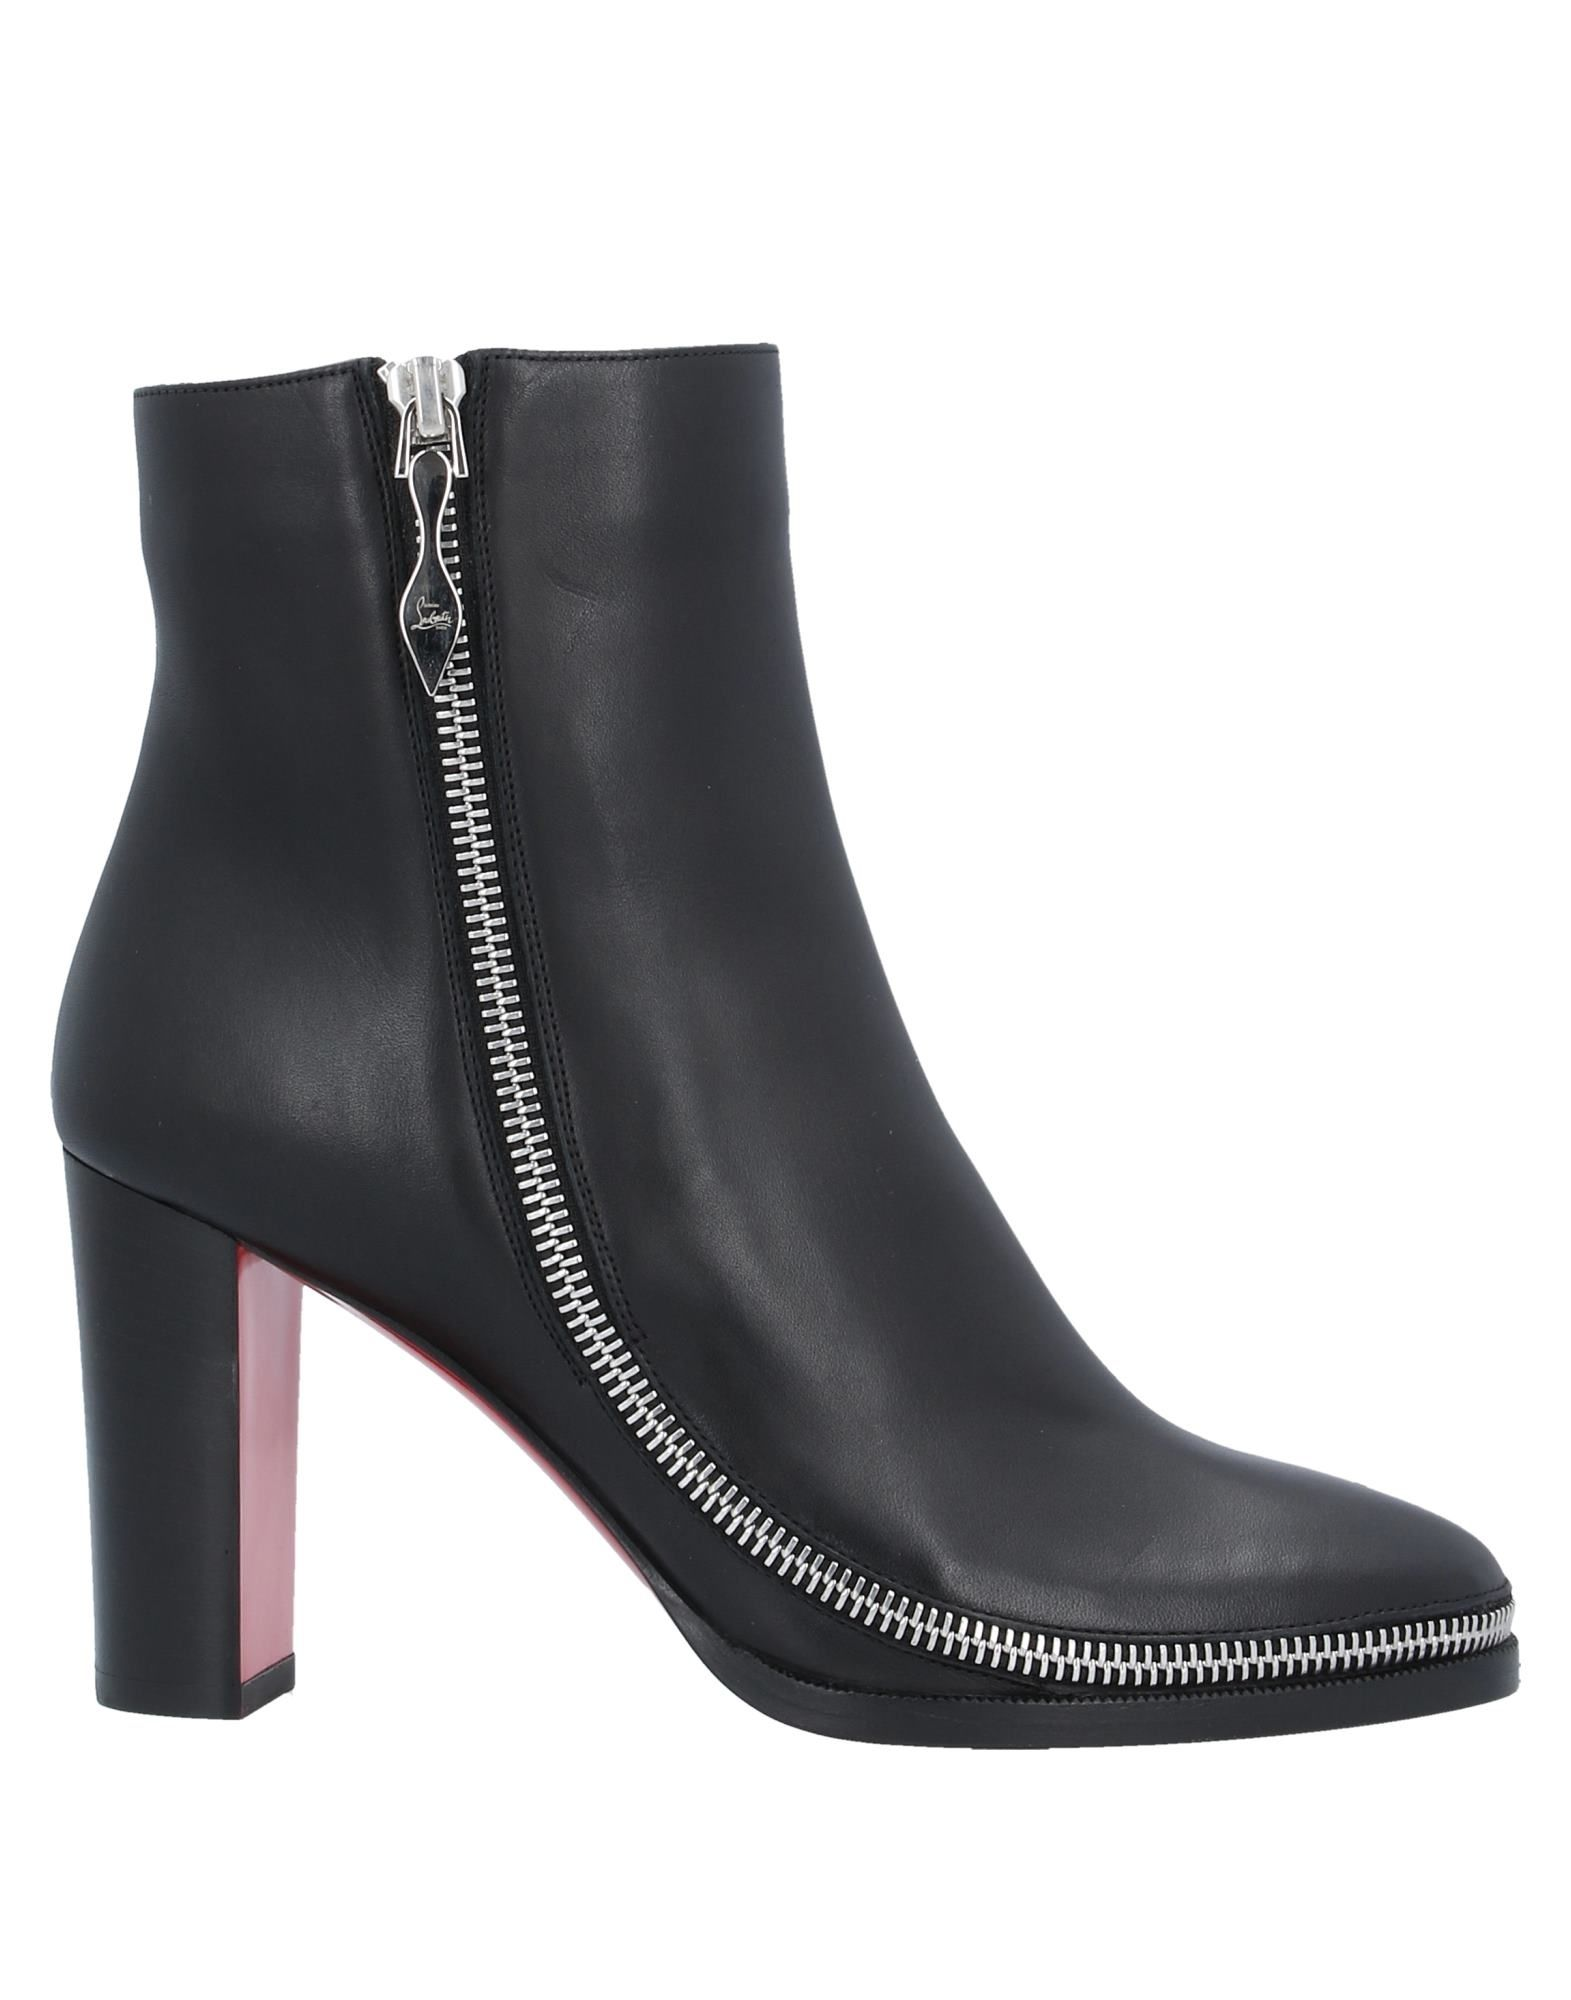 CHRISTIAN LOUBOUTIN Ankle boots. leather, metal applications, solid color, zipper closure, round toeline, geometric heel, leather lining, leather sole, contains non-textile parts of animal origin, small sized. Calfskin